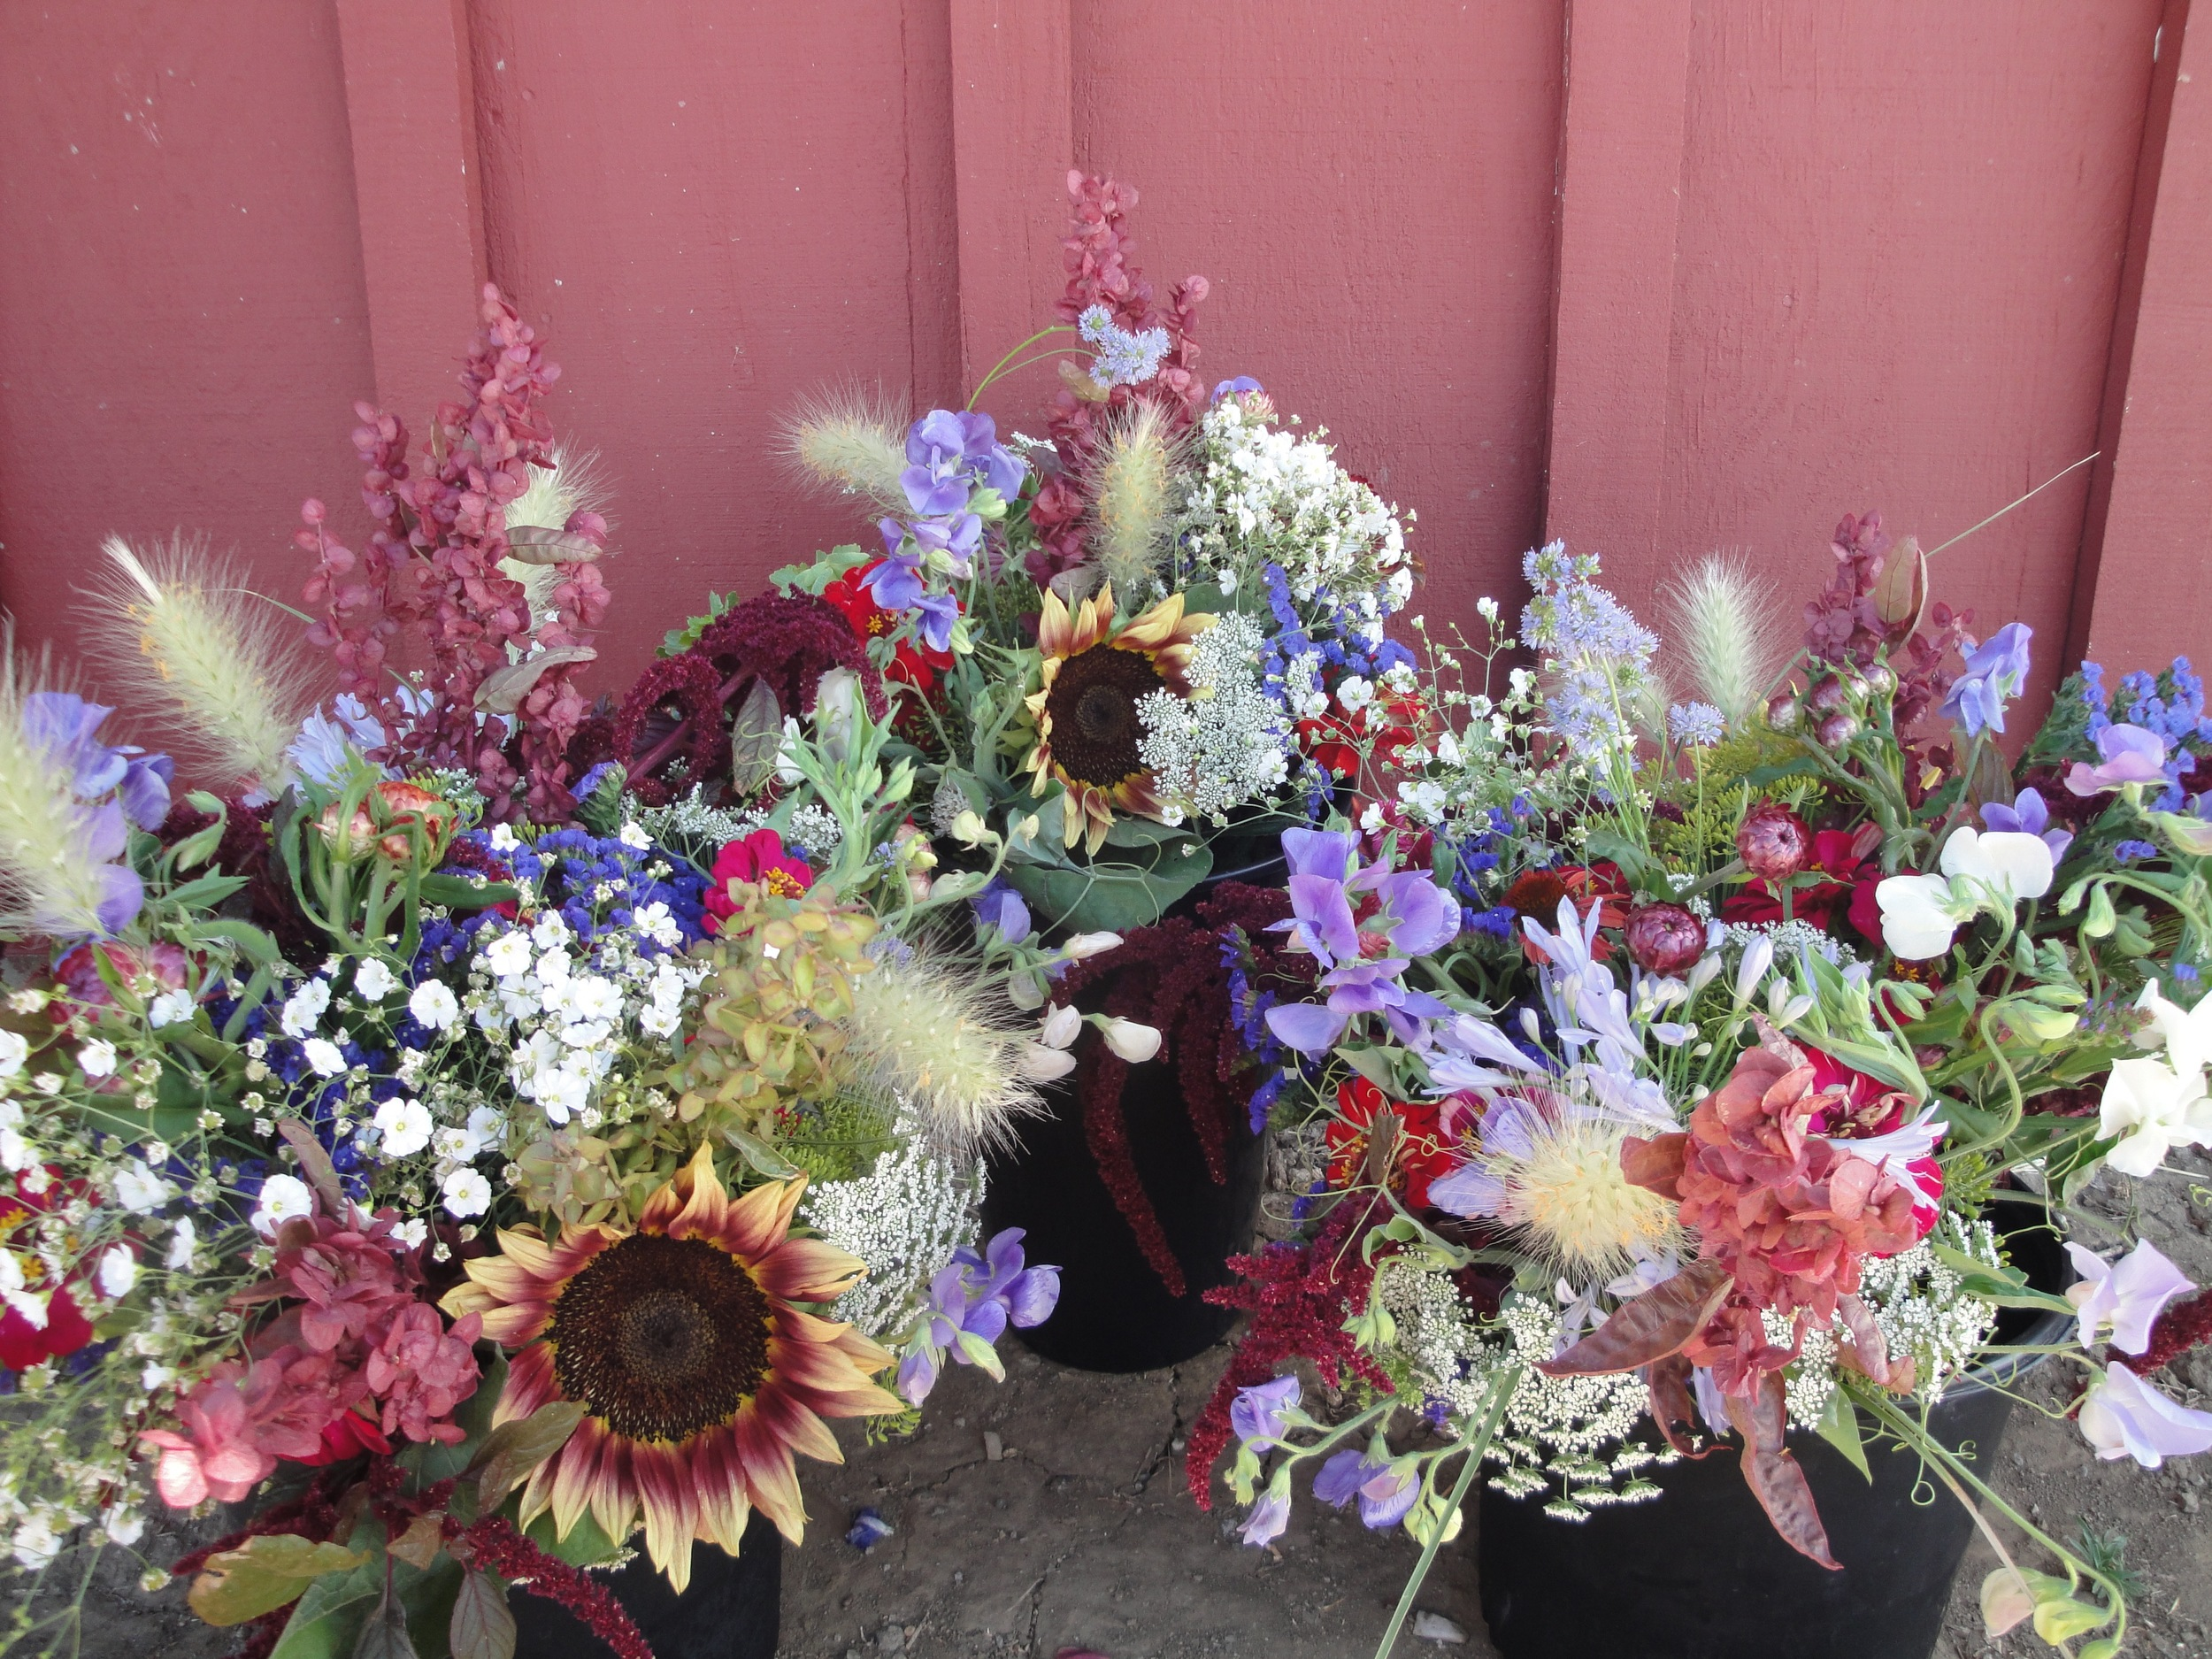 My Flower CSA subscribers got red, white, and blue bouquets this week in honor of American Flowers Week.